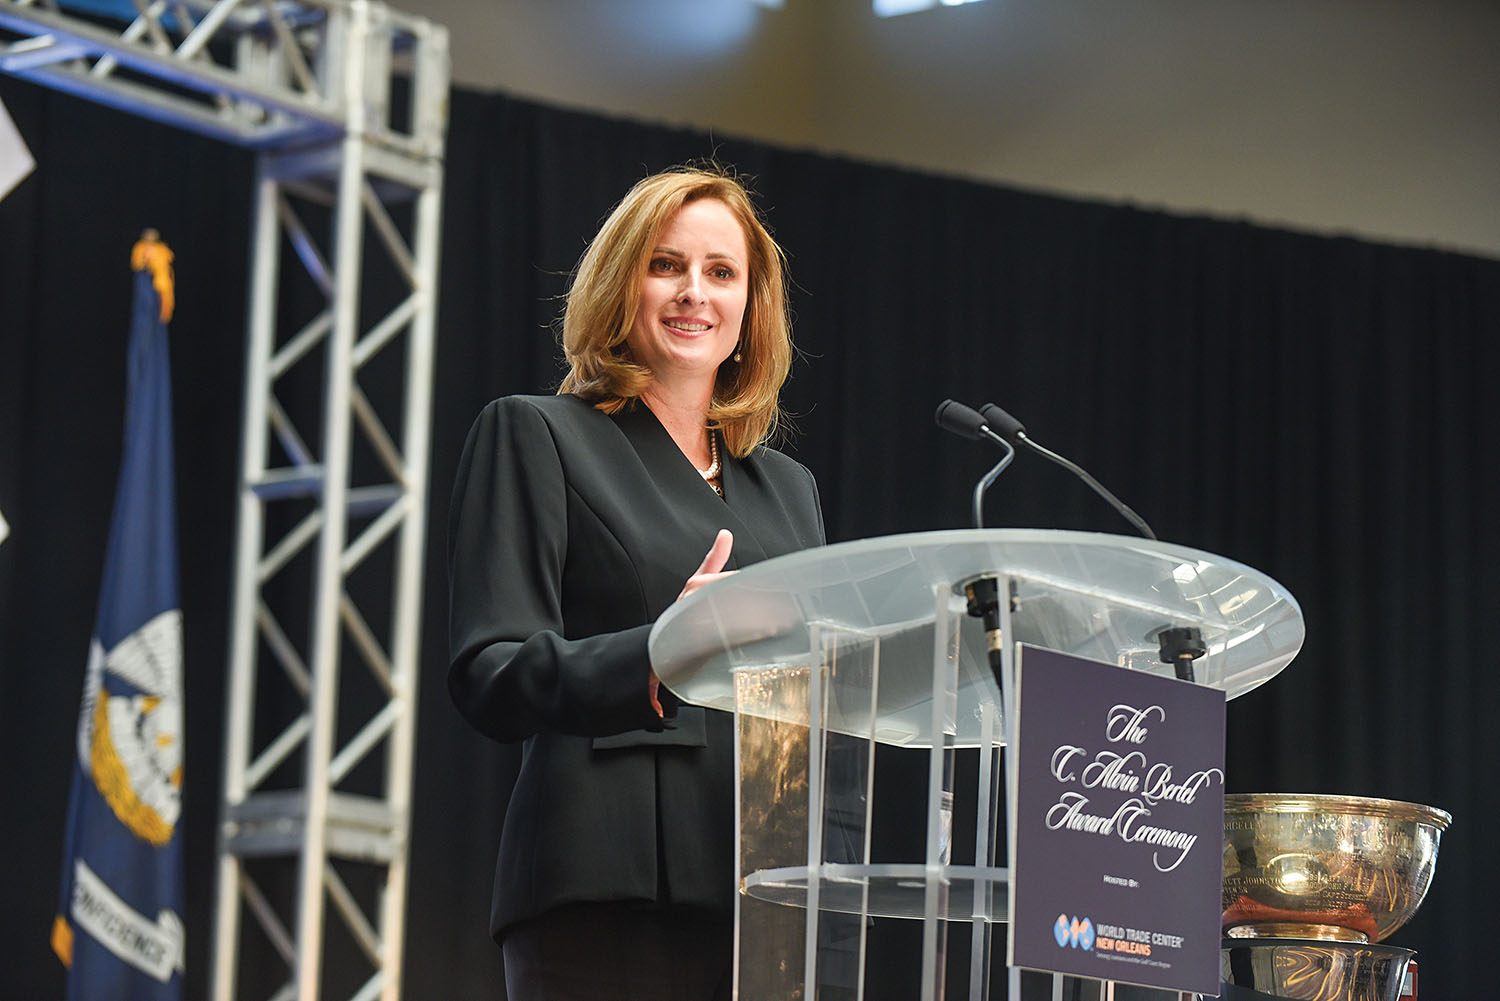 Port NOLA President and CEO and NOPB CEO Brandy Christian speaks at the C. Alvin Bertel Award ceremony at the annual World Trade Center event held November 18. (Photo courtesy of Port NOLA)